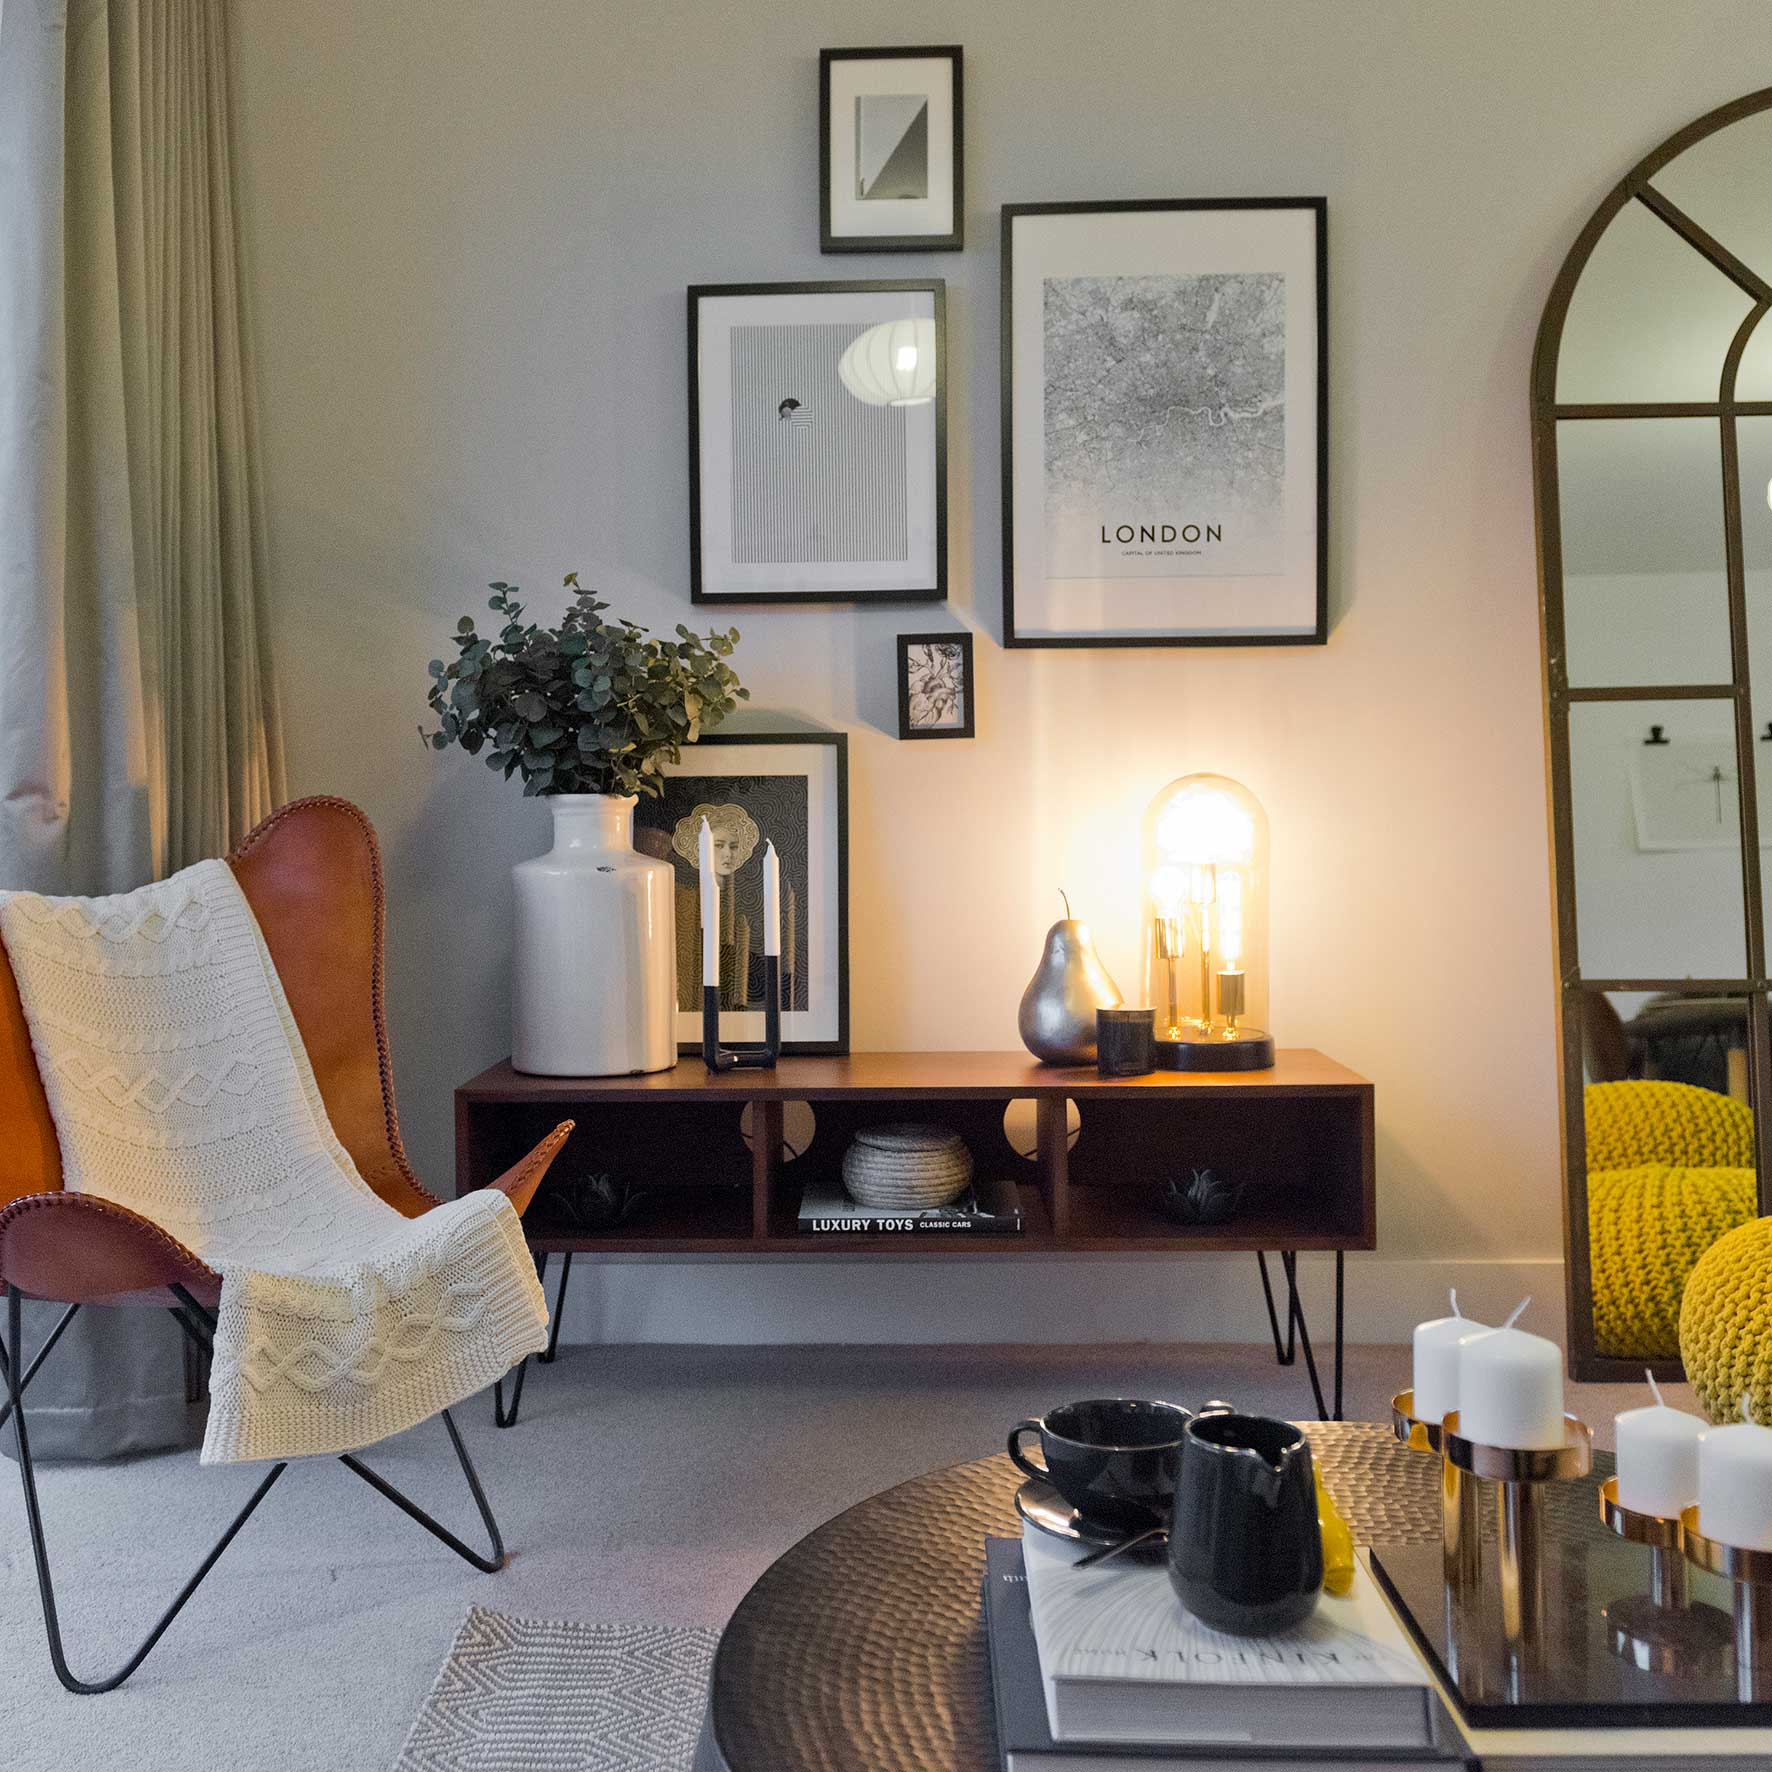 CLARION GROUP BLACKFRIARS PLACE LONDON SHOW HOME livng room.jpg